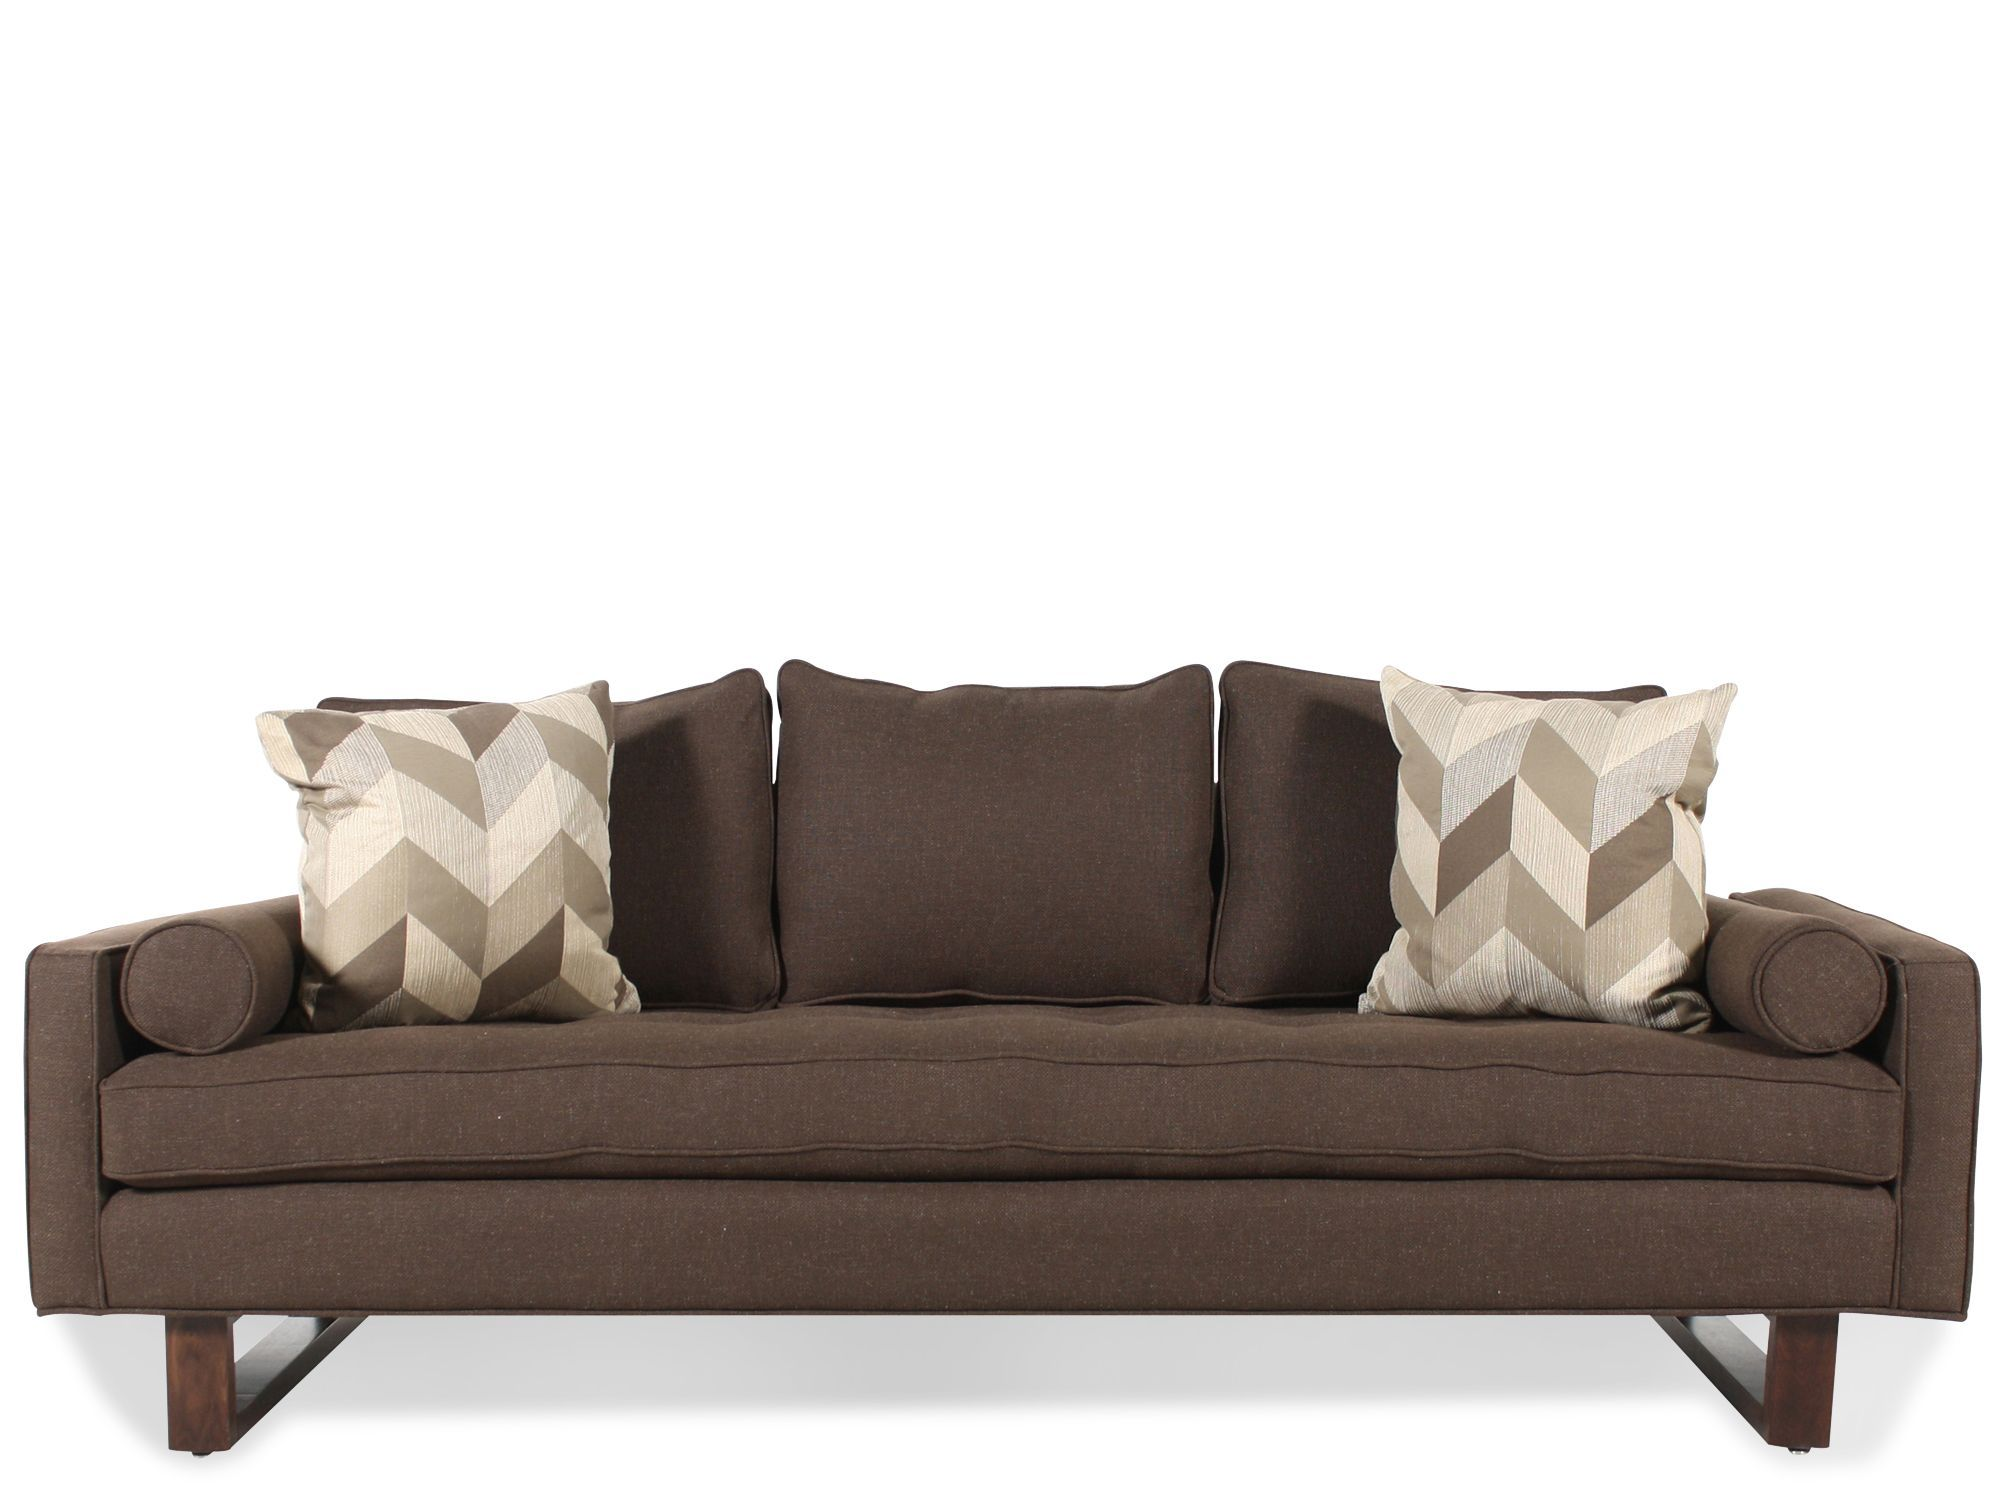 Jonathan Louis Bennett Sofa To Match My New Chair In Gray Fabric Pattern  Flannel Color